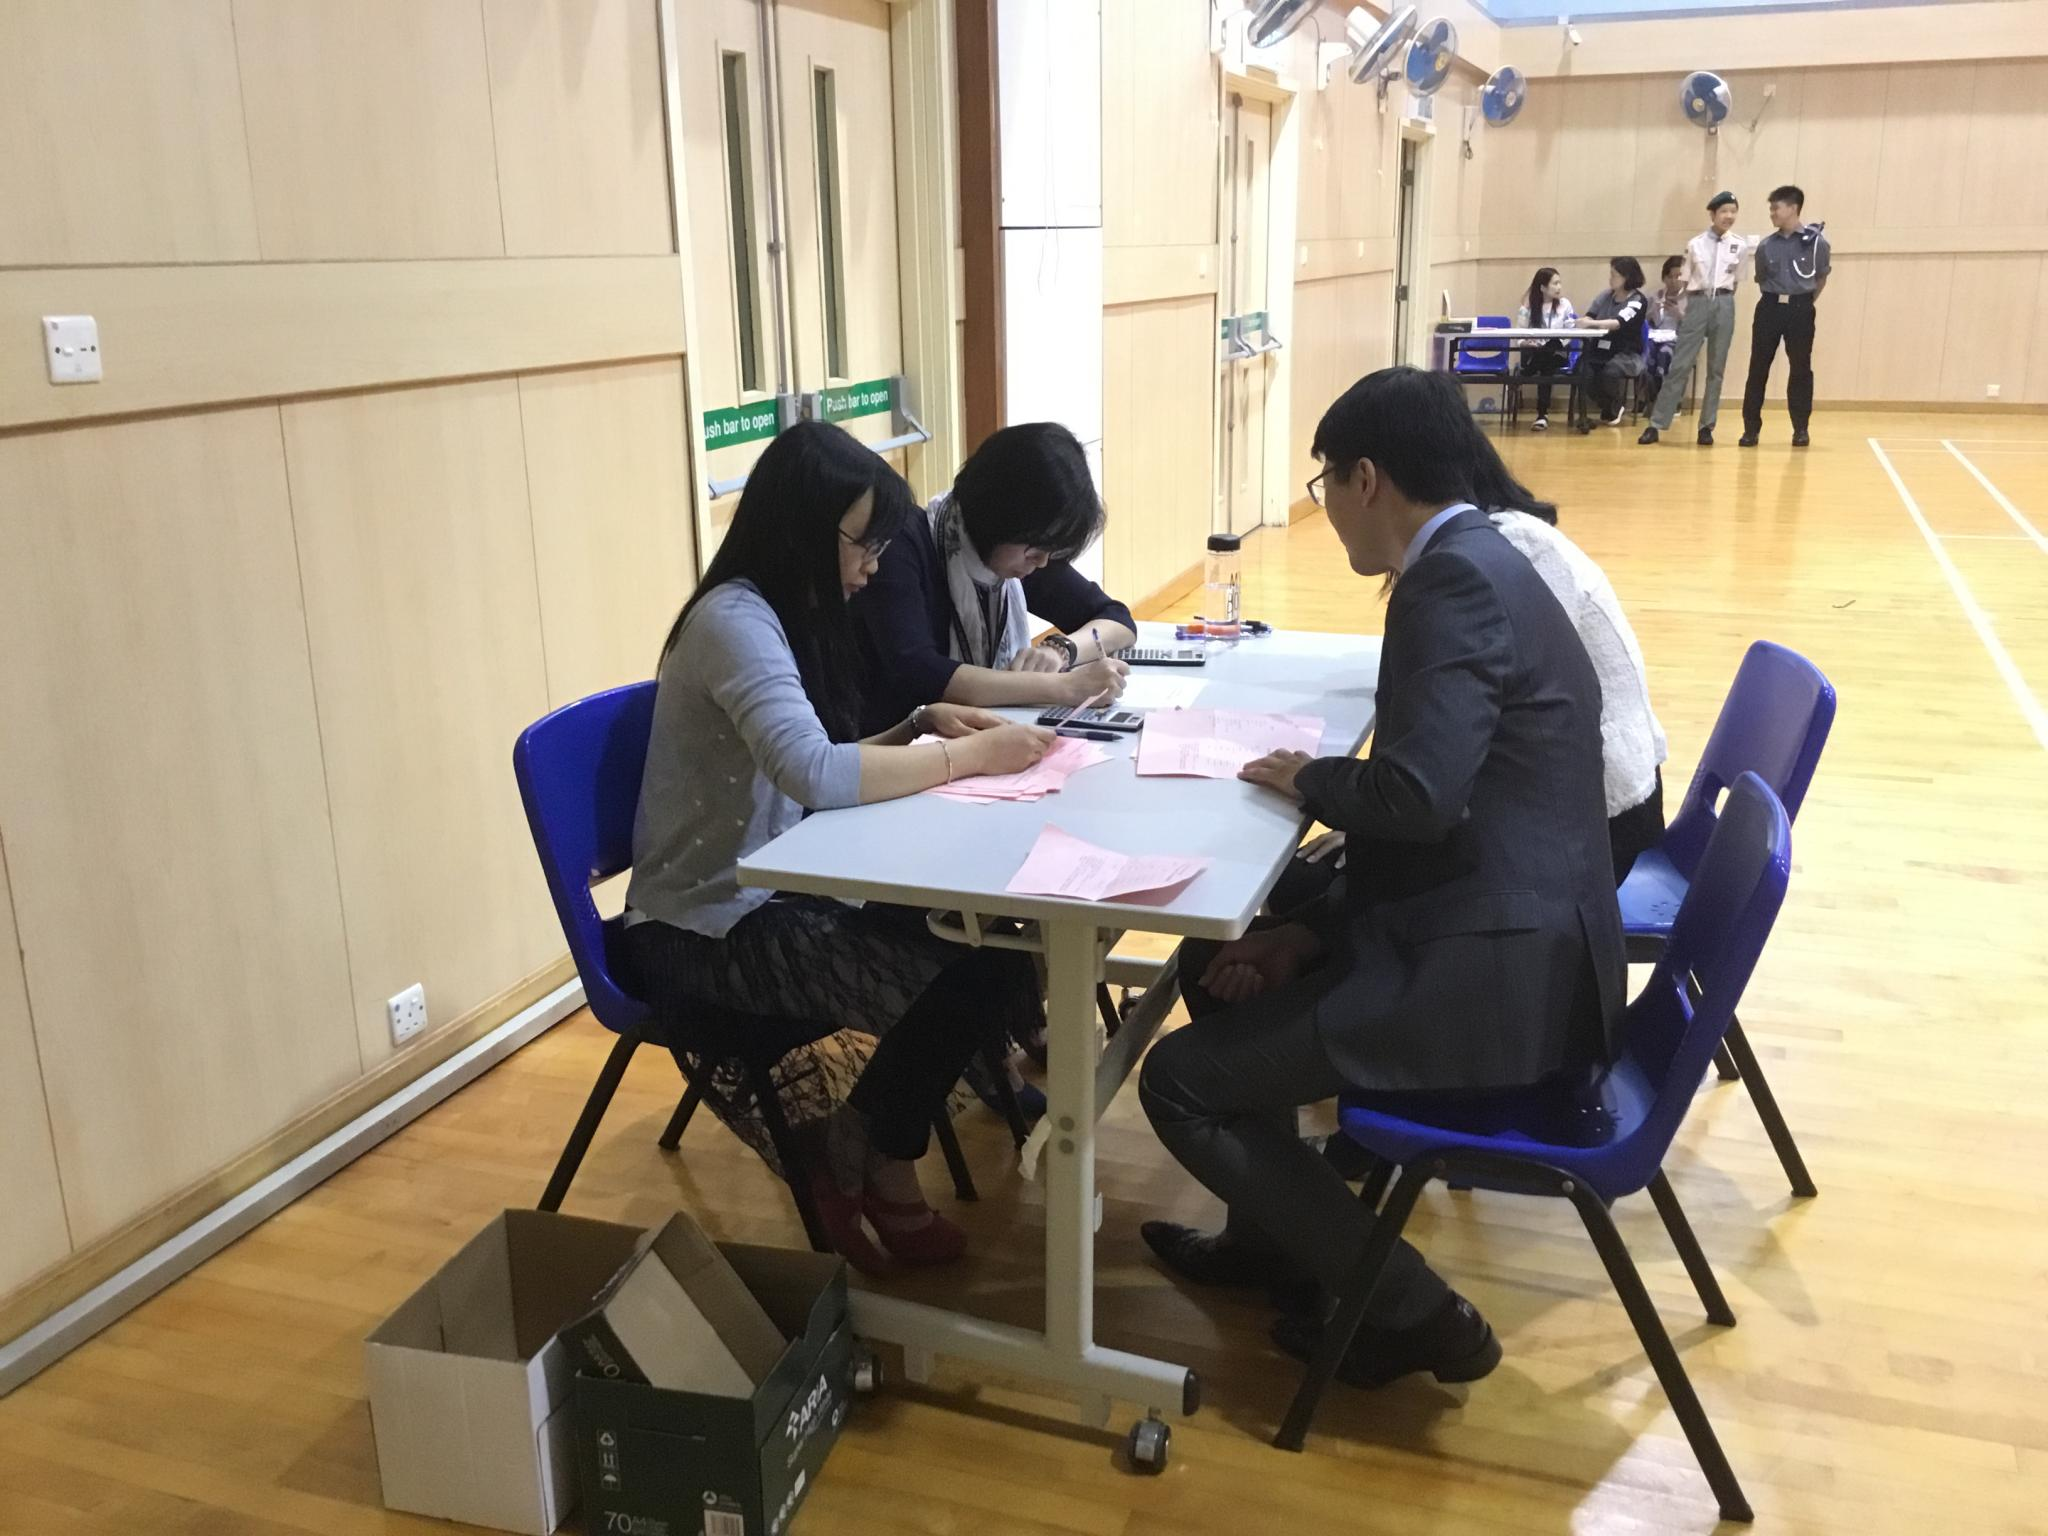 The Principal and the PTA President monitored the process of counting of votes for new parent committees of the PTA of the coming year.